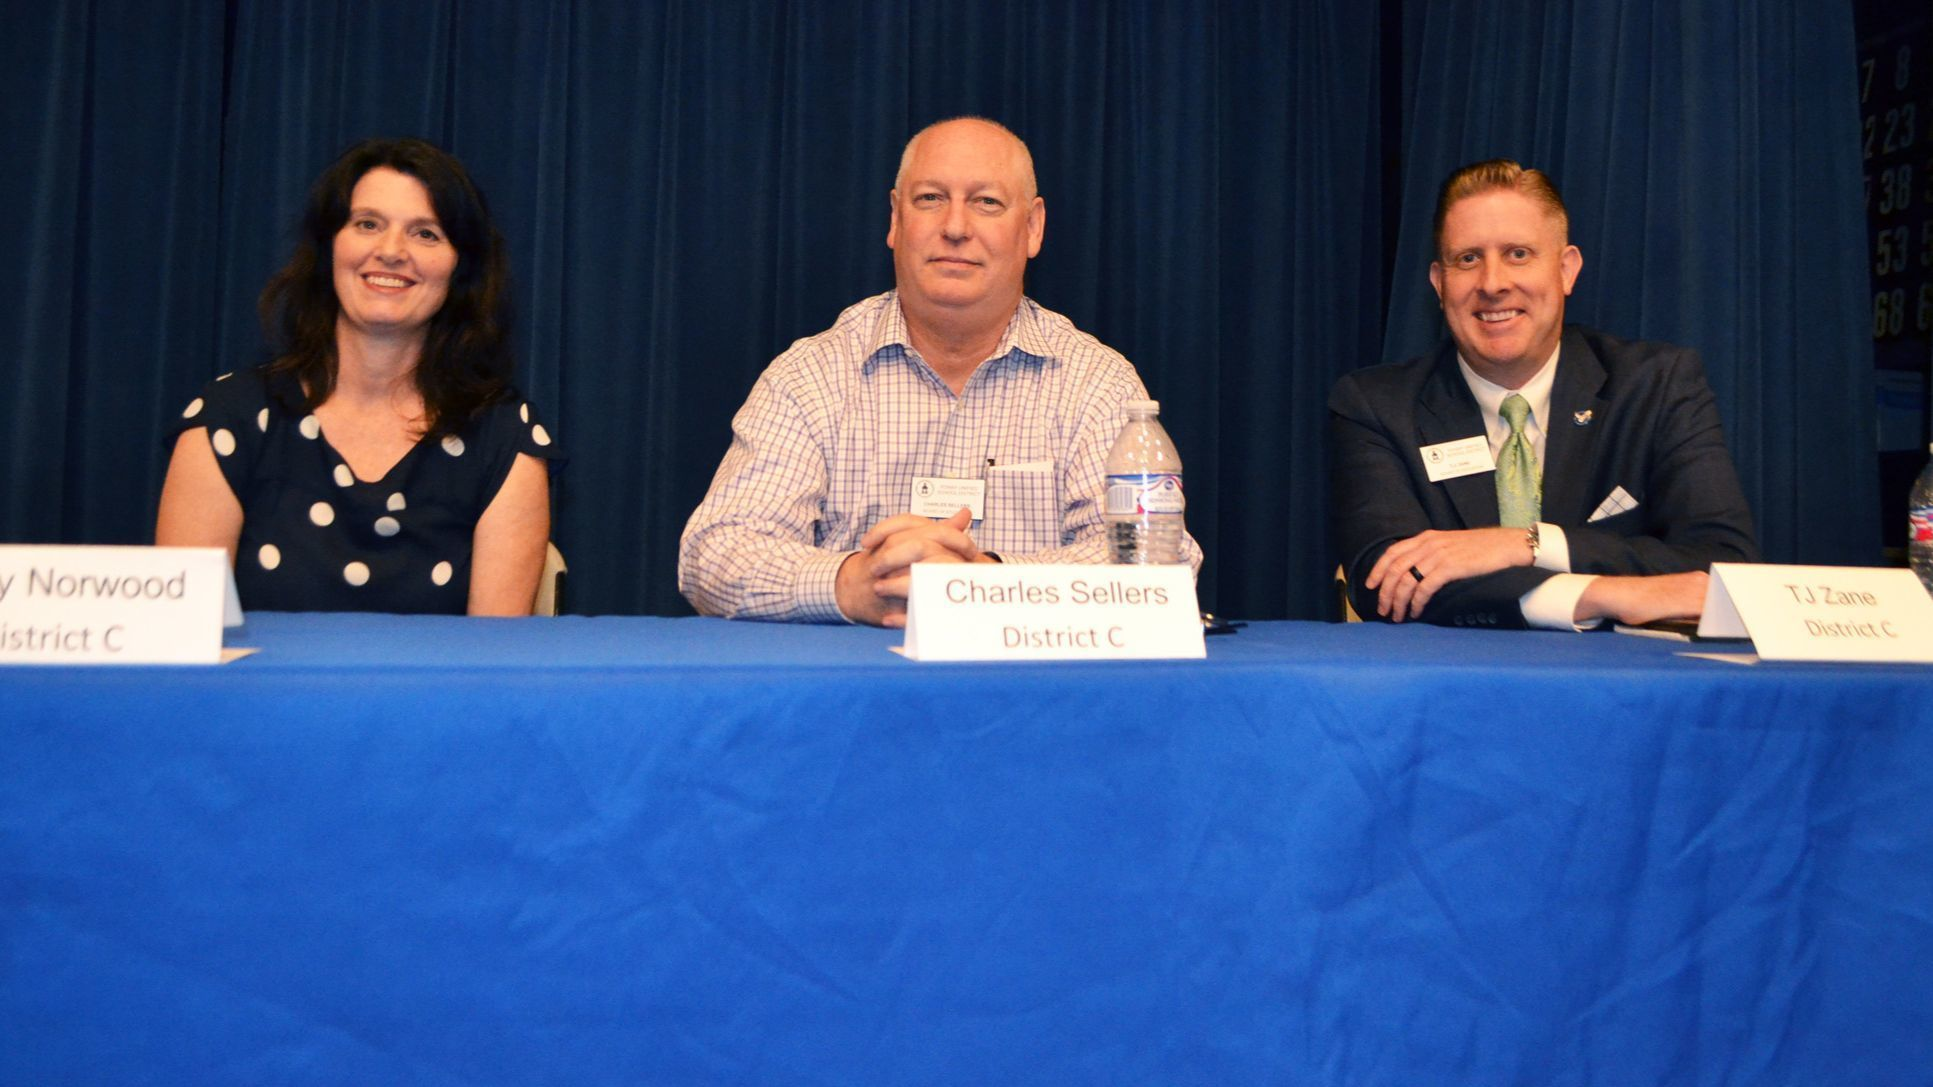 District C candidates Terry Norwood, Charles Sellers and T.J. Zane